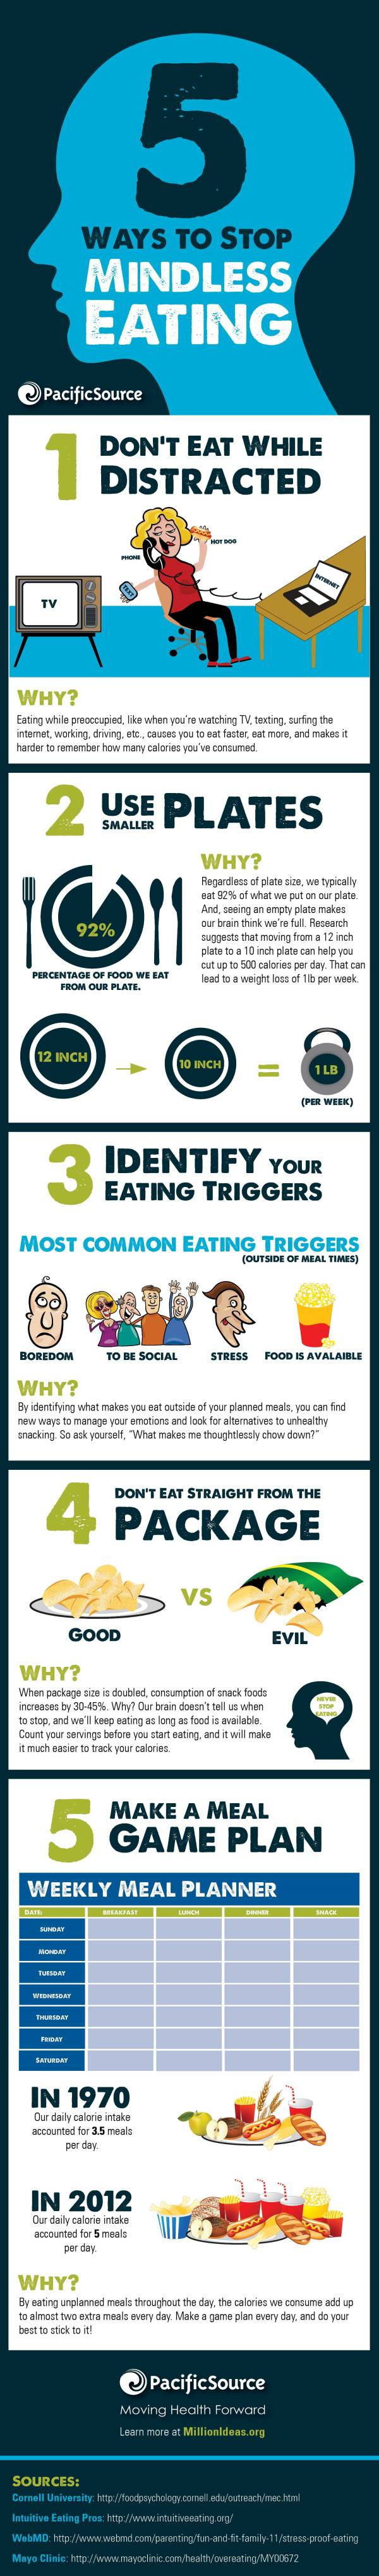 Mindless-Eating-Infographic_blog